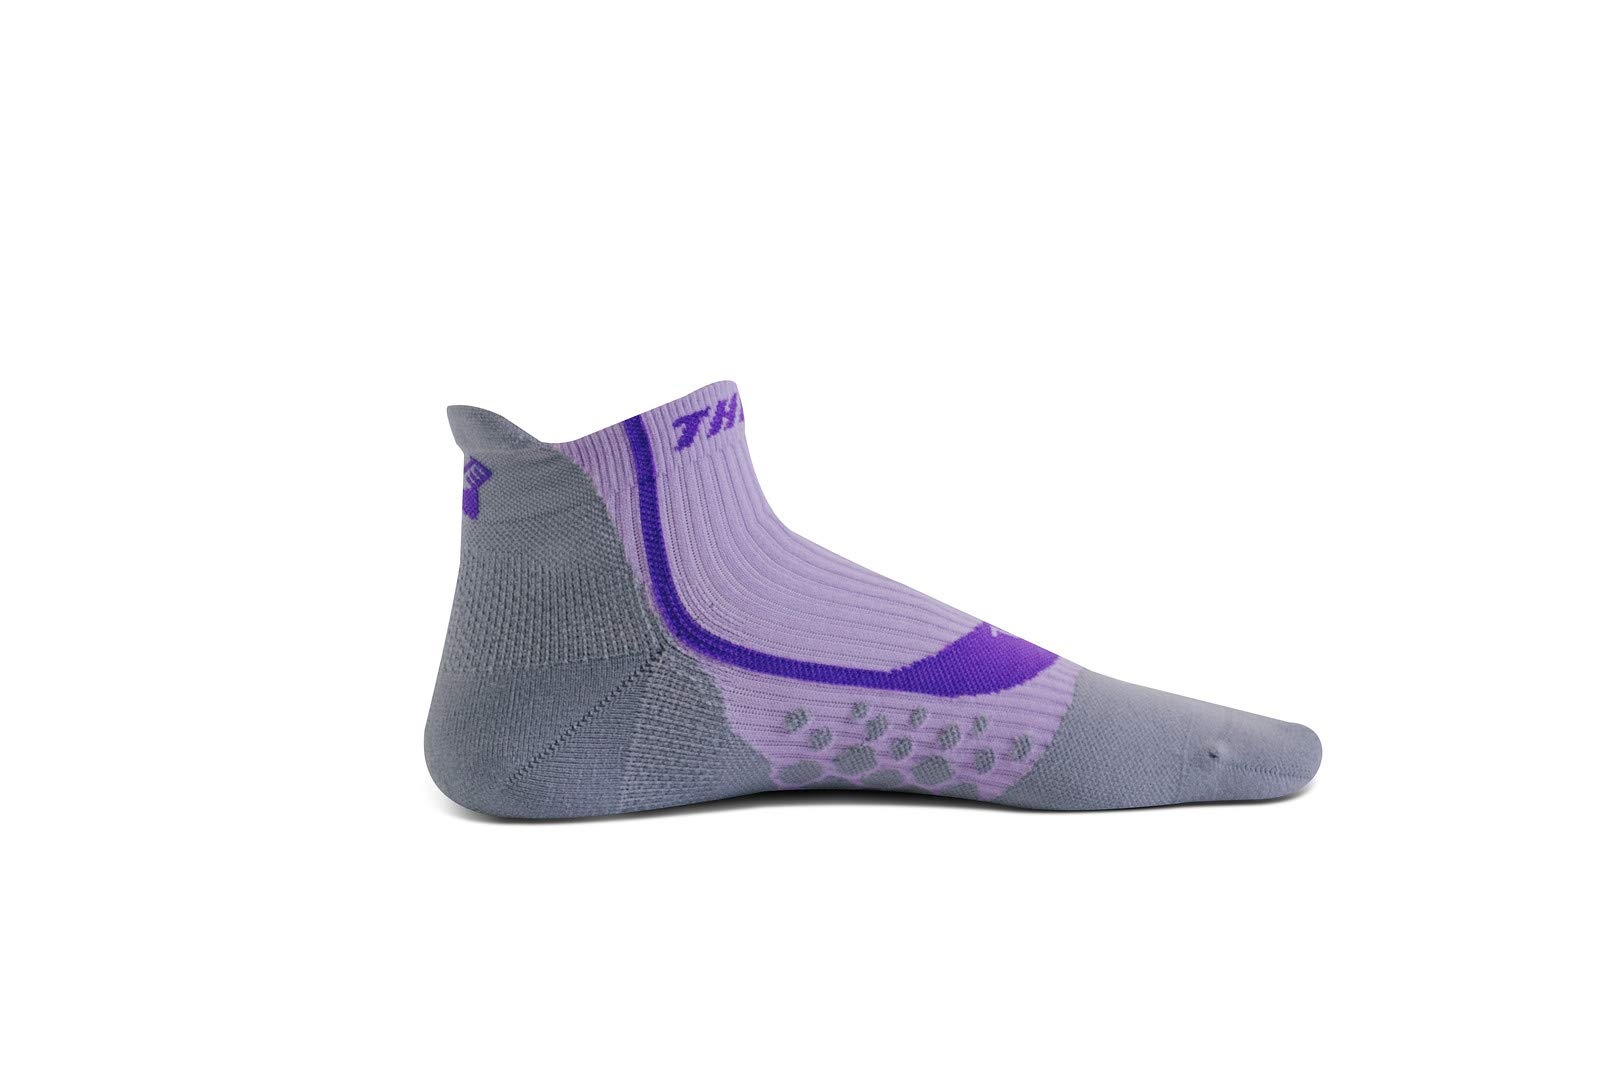 Thirty 48 Compression Low-Cut Running Socks for Men and Women (Small - Women 5-6.5 // Men 6-7.5, [1 Pair] Purple/Gray)